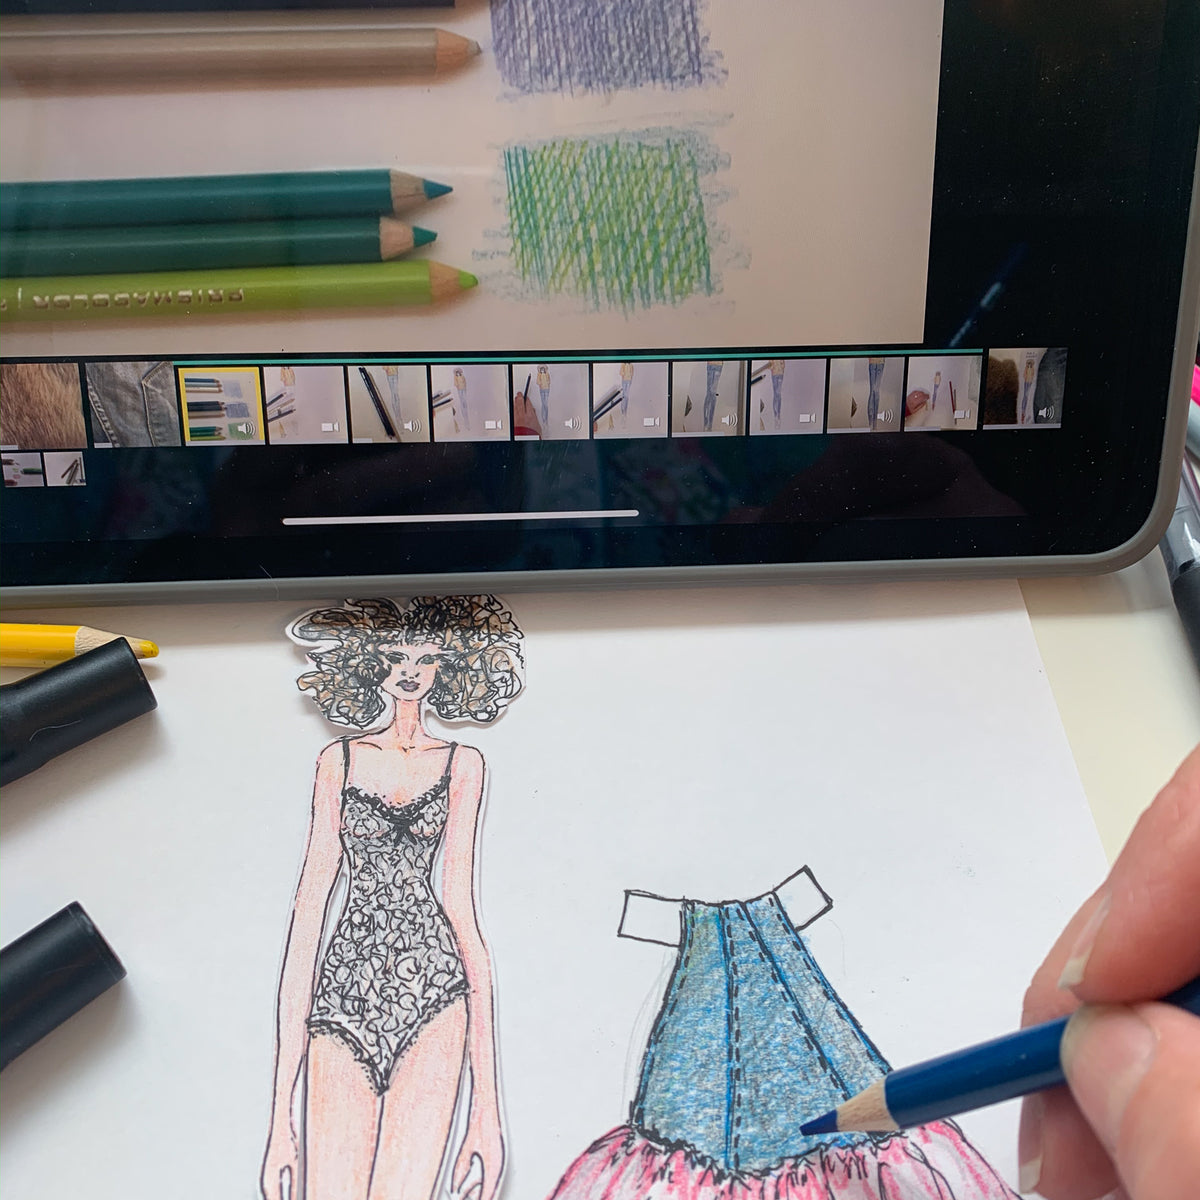 Hand sketching denim paper doll skirt with iPad showing sketching instructions